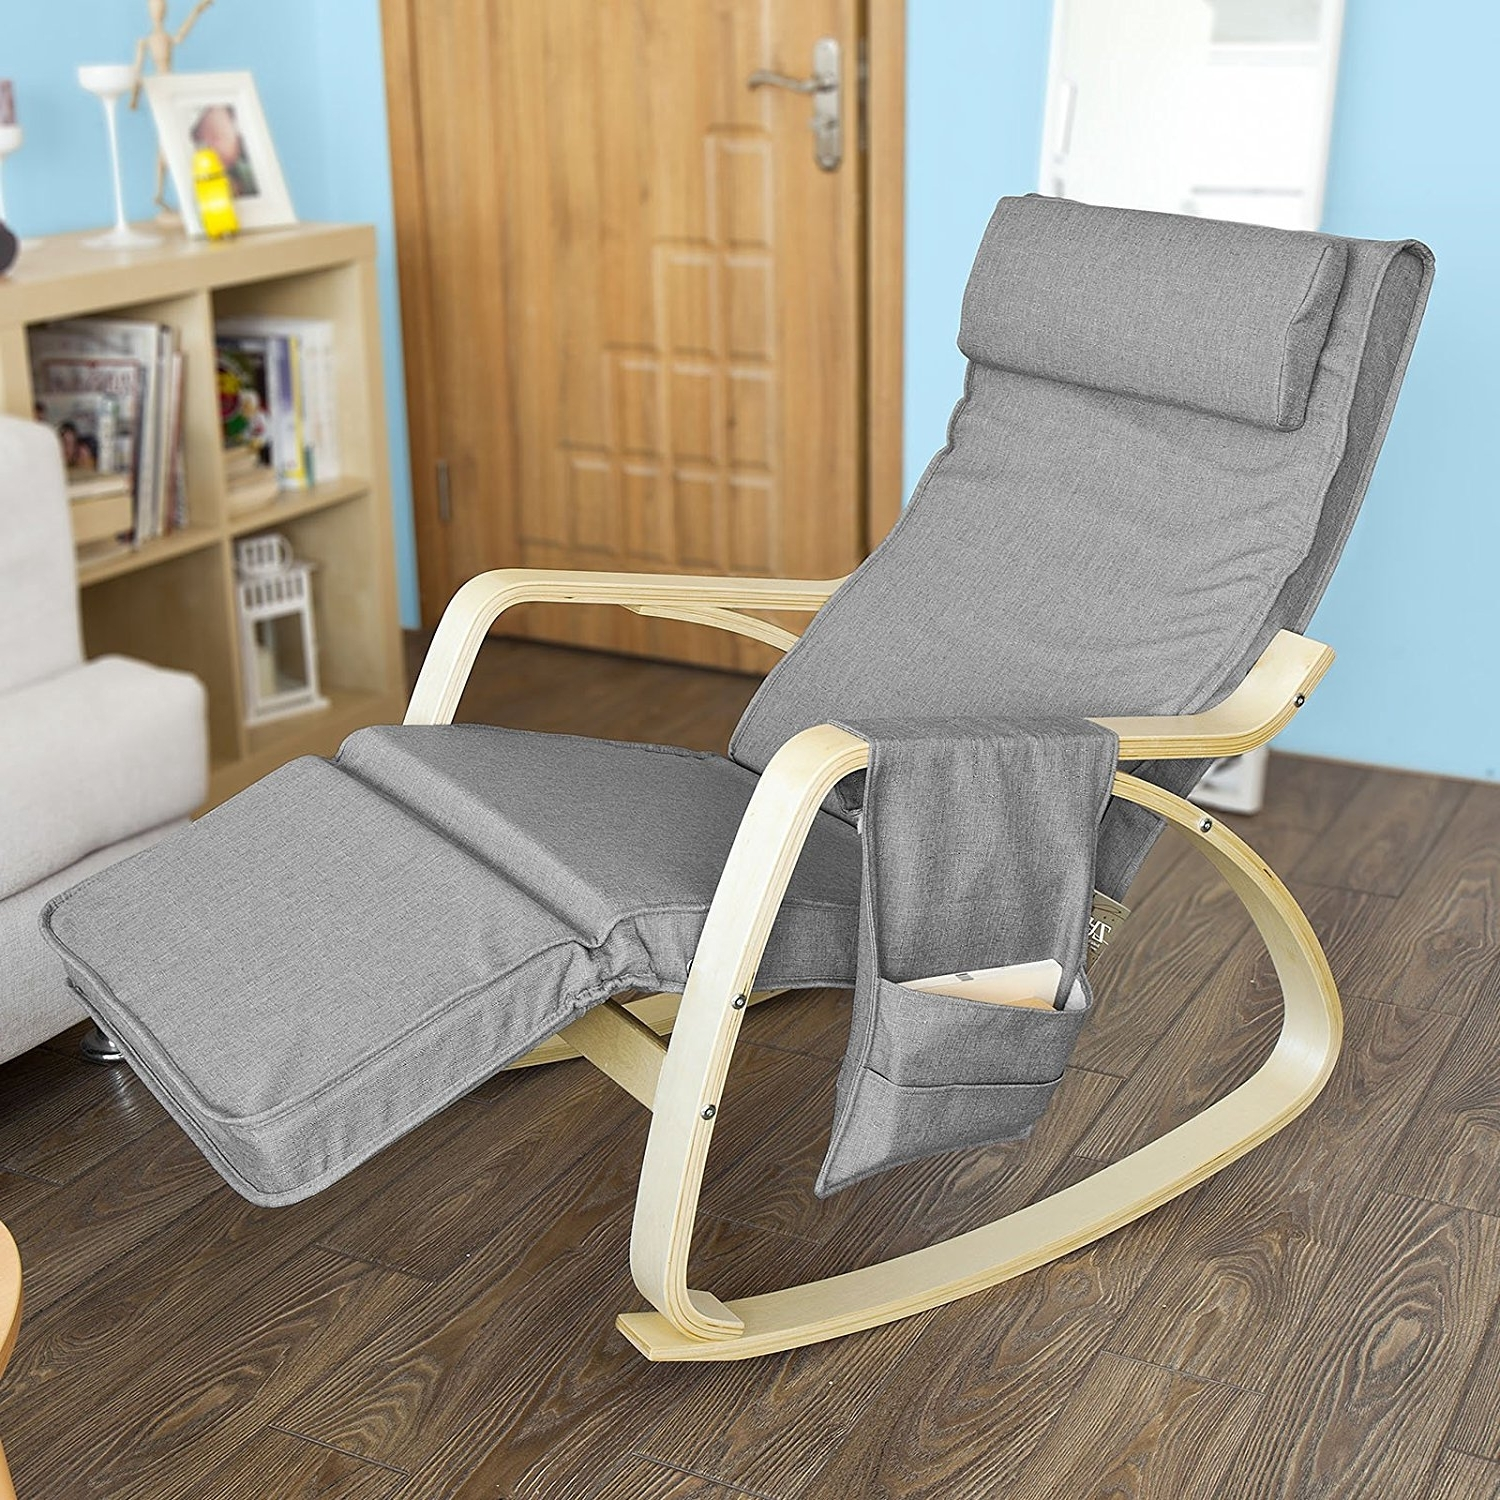 Most Recent Rock Away Back Pain Using Rocking Chairs/inversiontableplus With Regard To Rocking Chairs With Footrest (View 9 of 20)